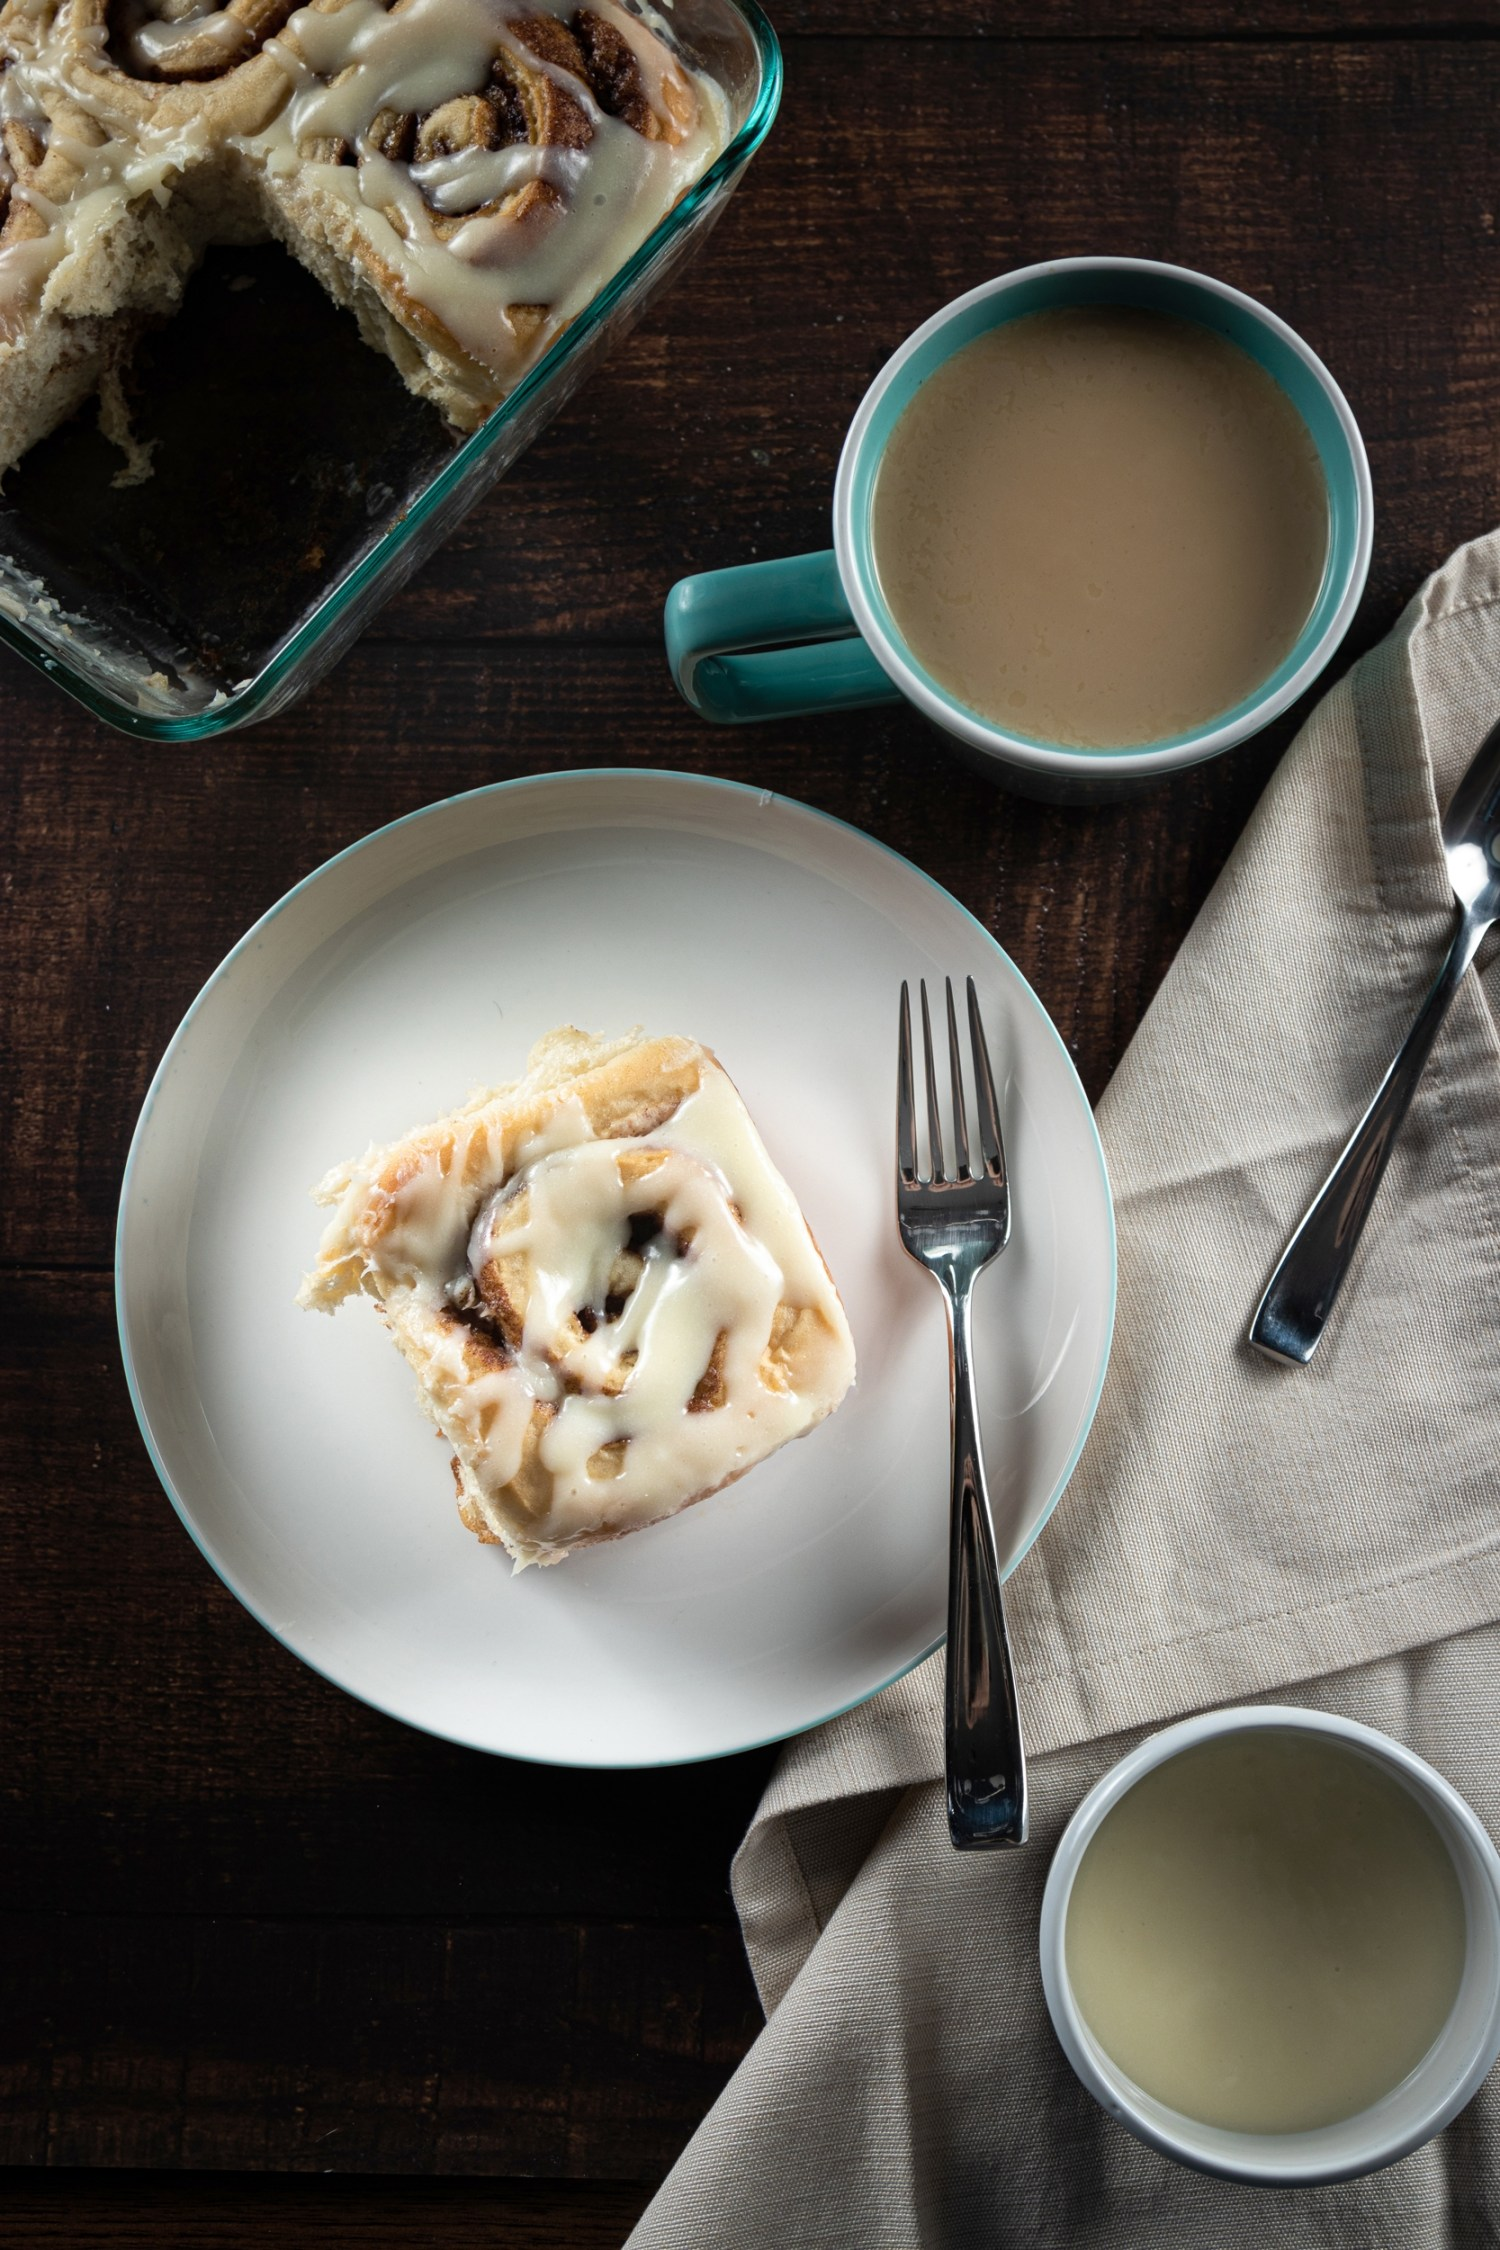 vertical shot of Cinnamon Bun on table with coffee and tray with missing cinnamon bun. Top down